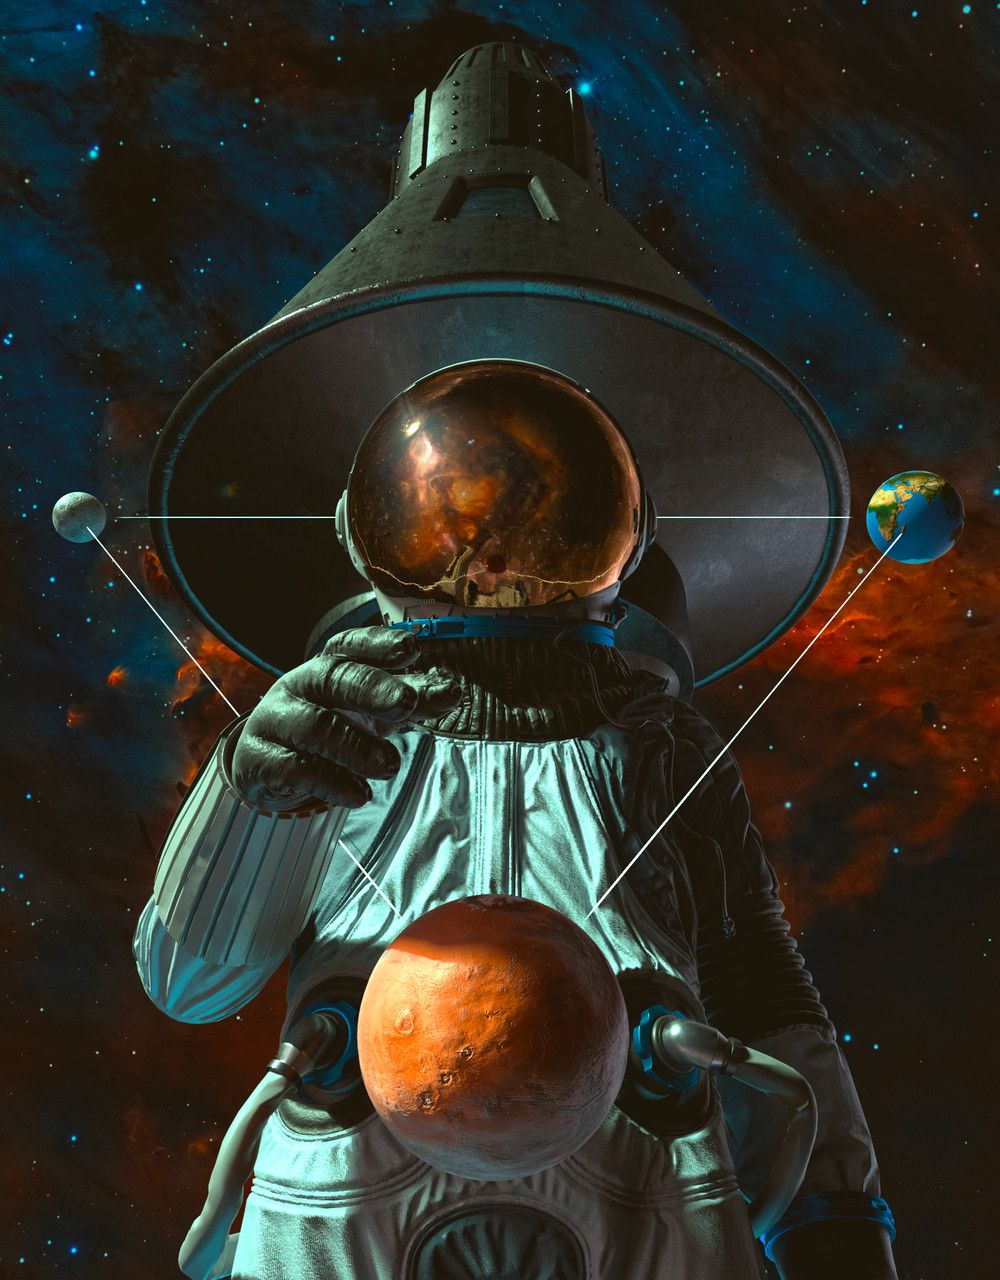 Artstation Jesus Bibian Jr S Submission On Adobe Dimension From The Moon To Mars Celebrating Apollo S 50th Anniversa Space Art Space Artwork Astronaut Art